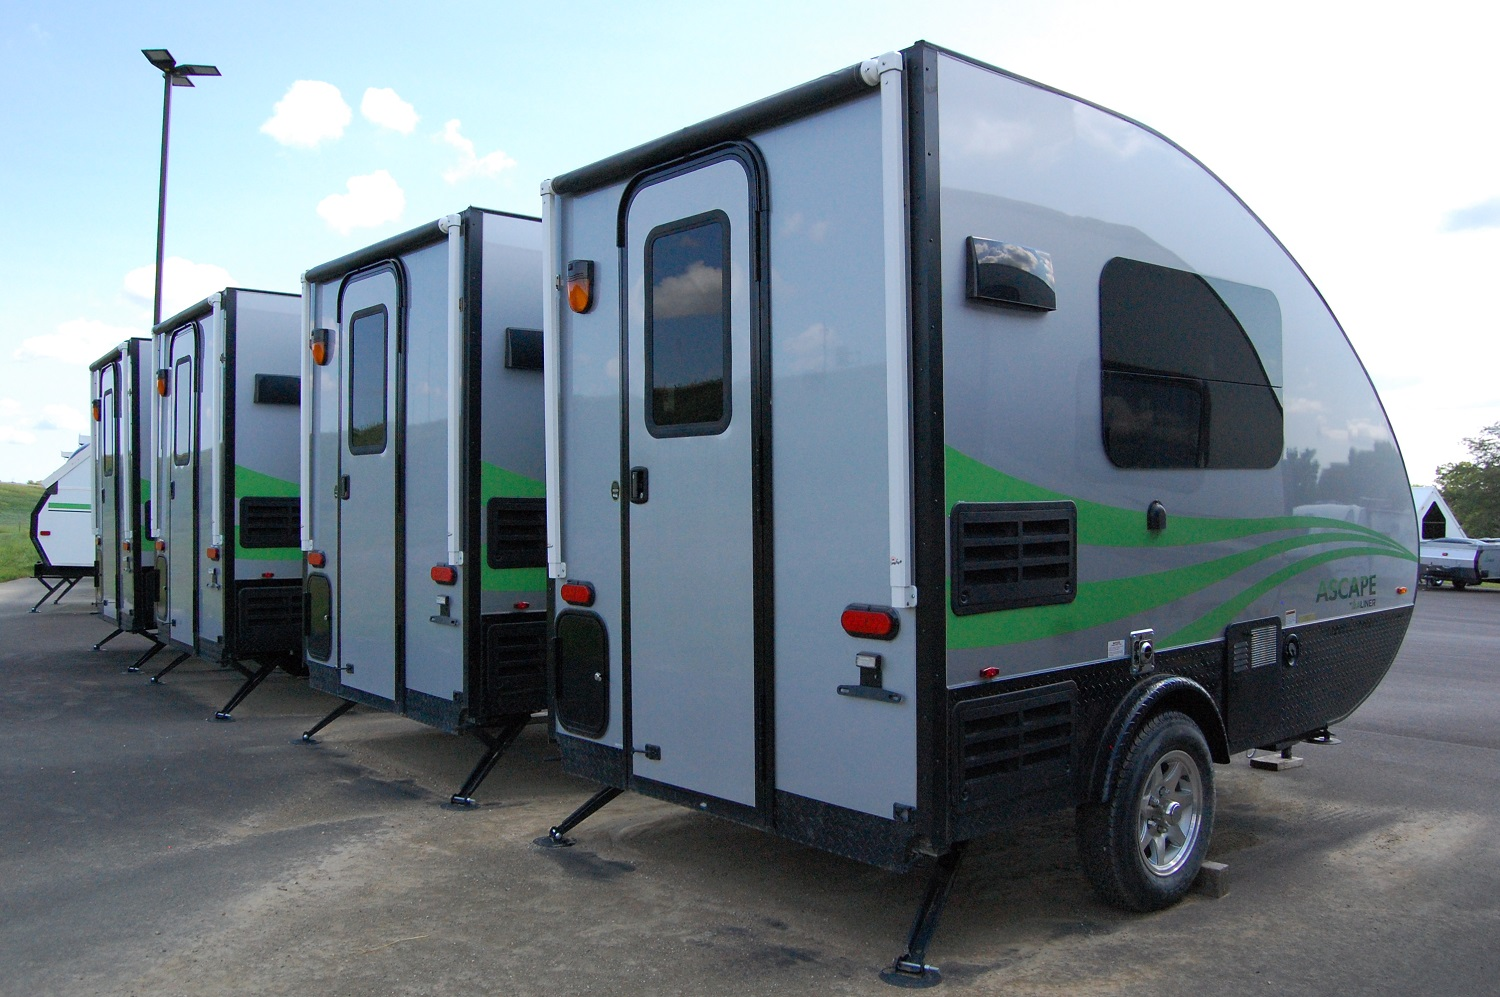 aliner ascape | The Small Trailer Enthusiast